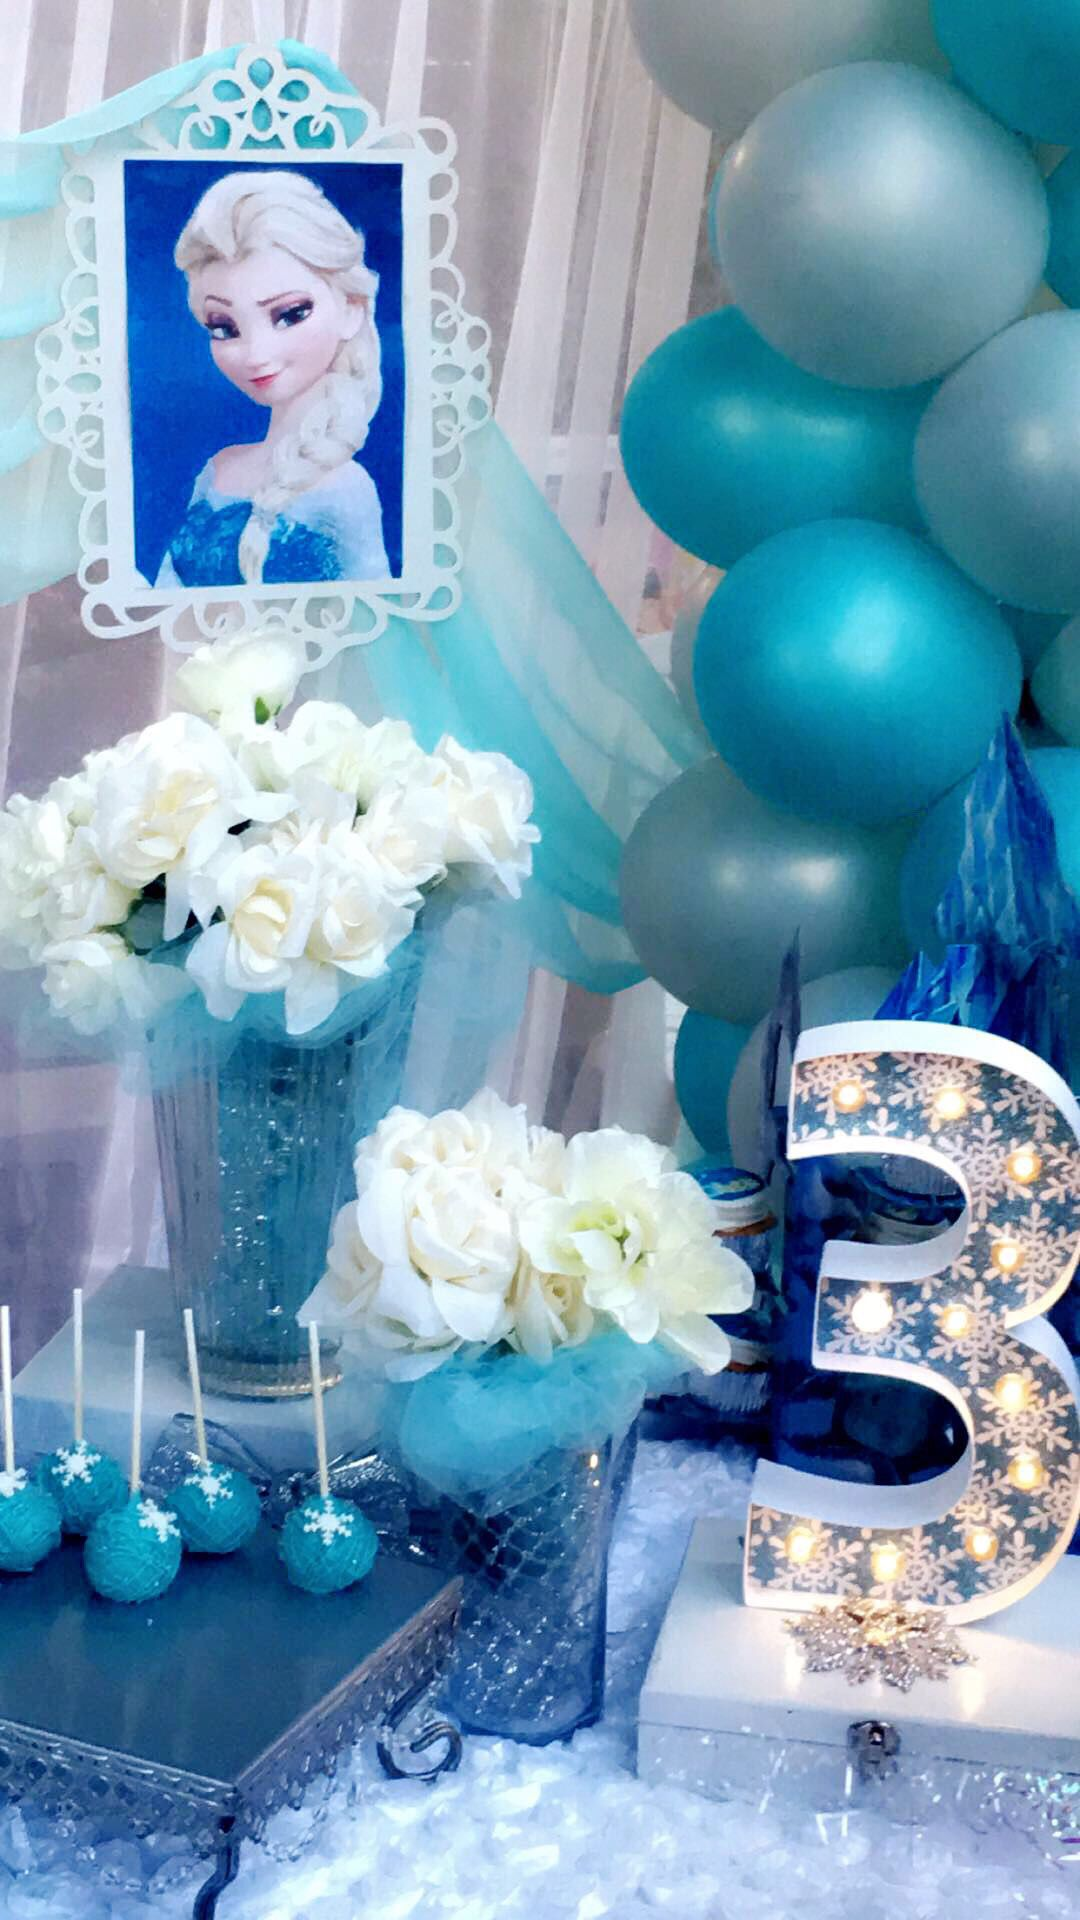 Frozen 3Rd Birthday Party Cake Table Details By Yara Martins